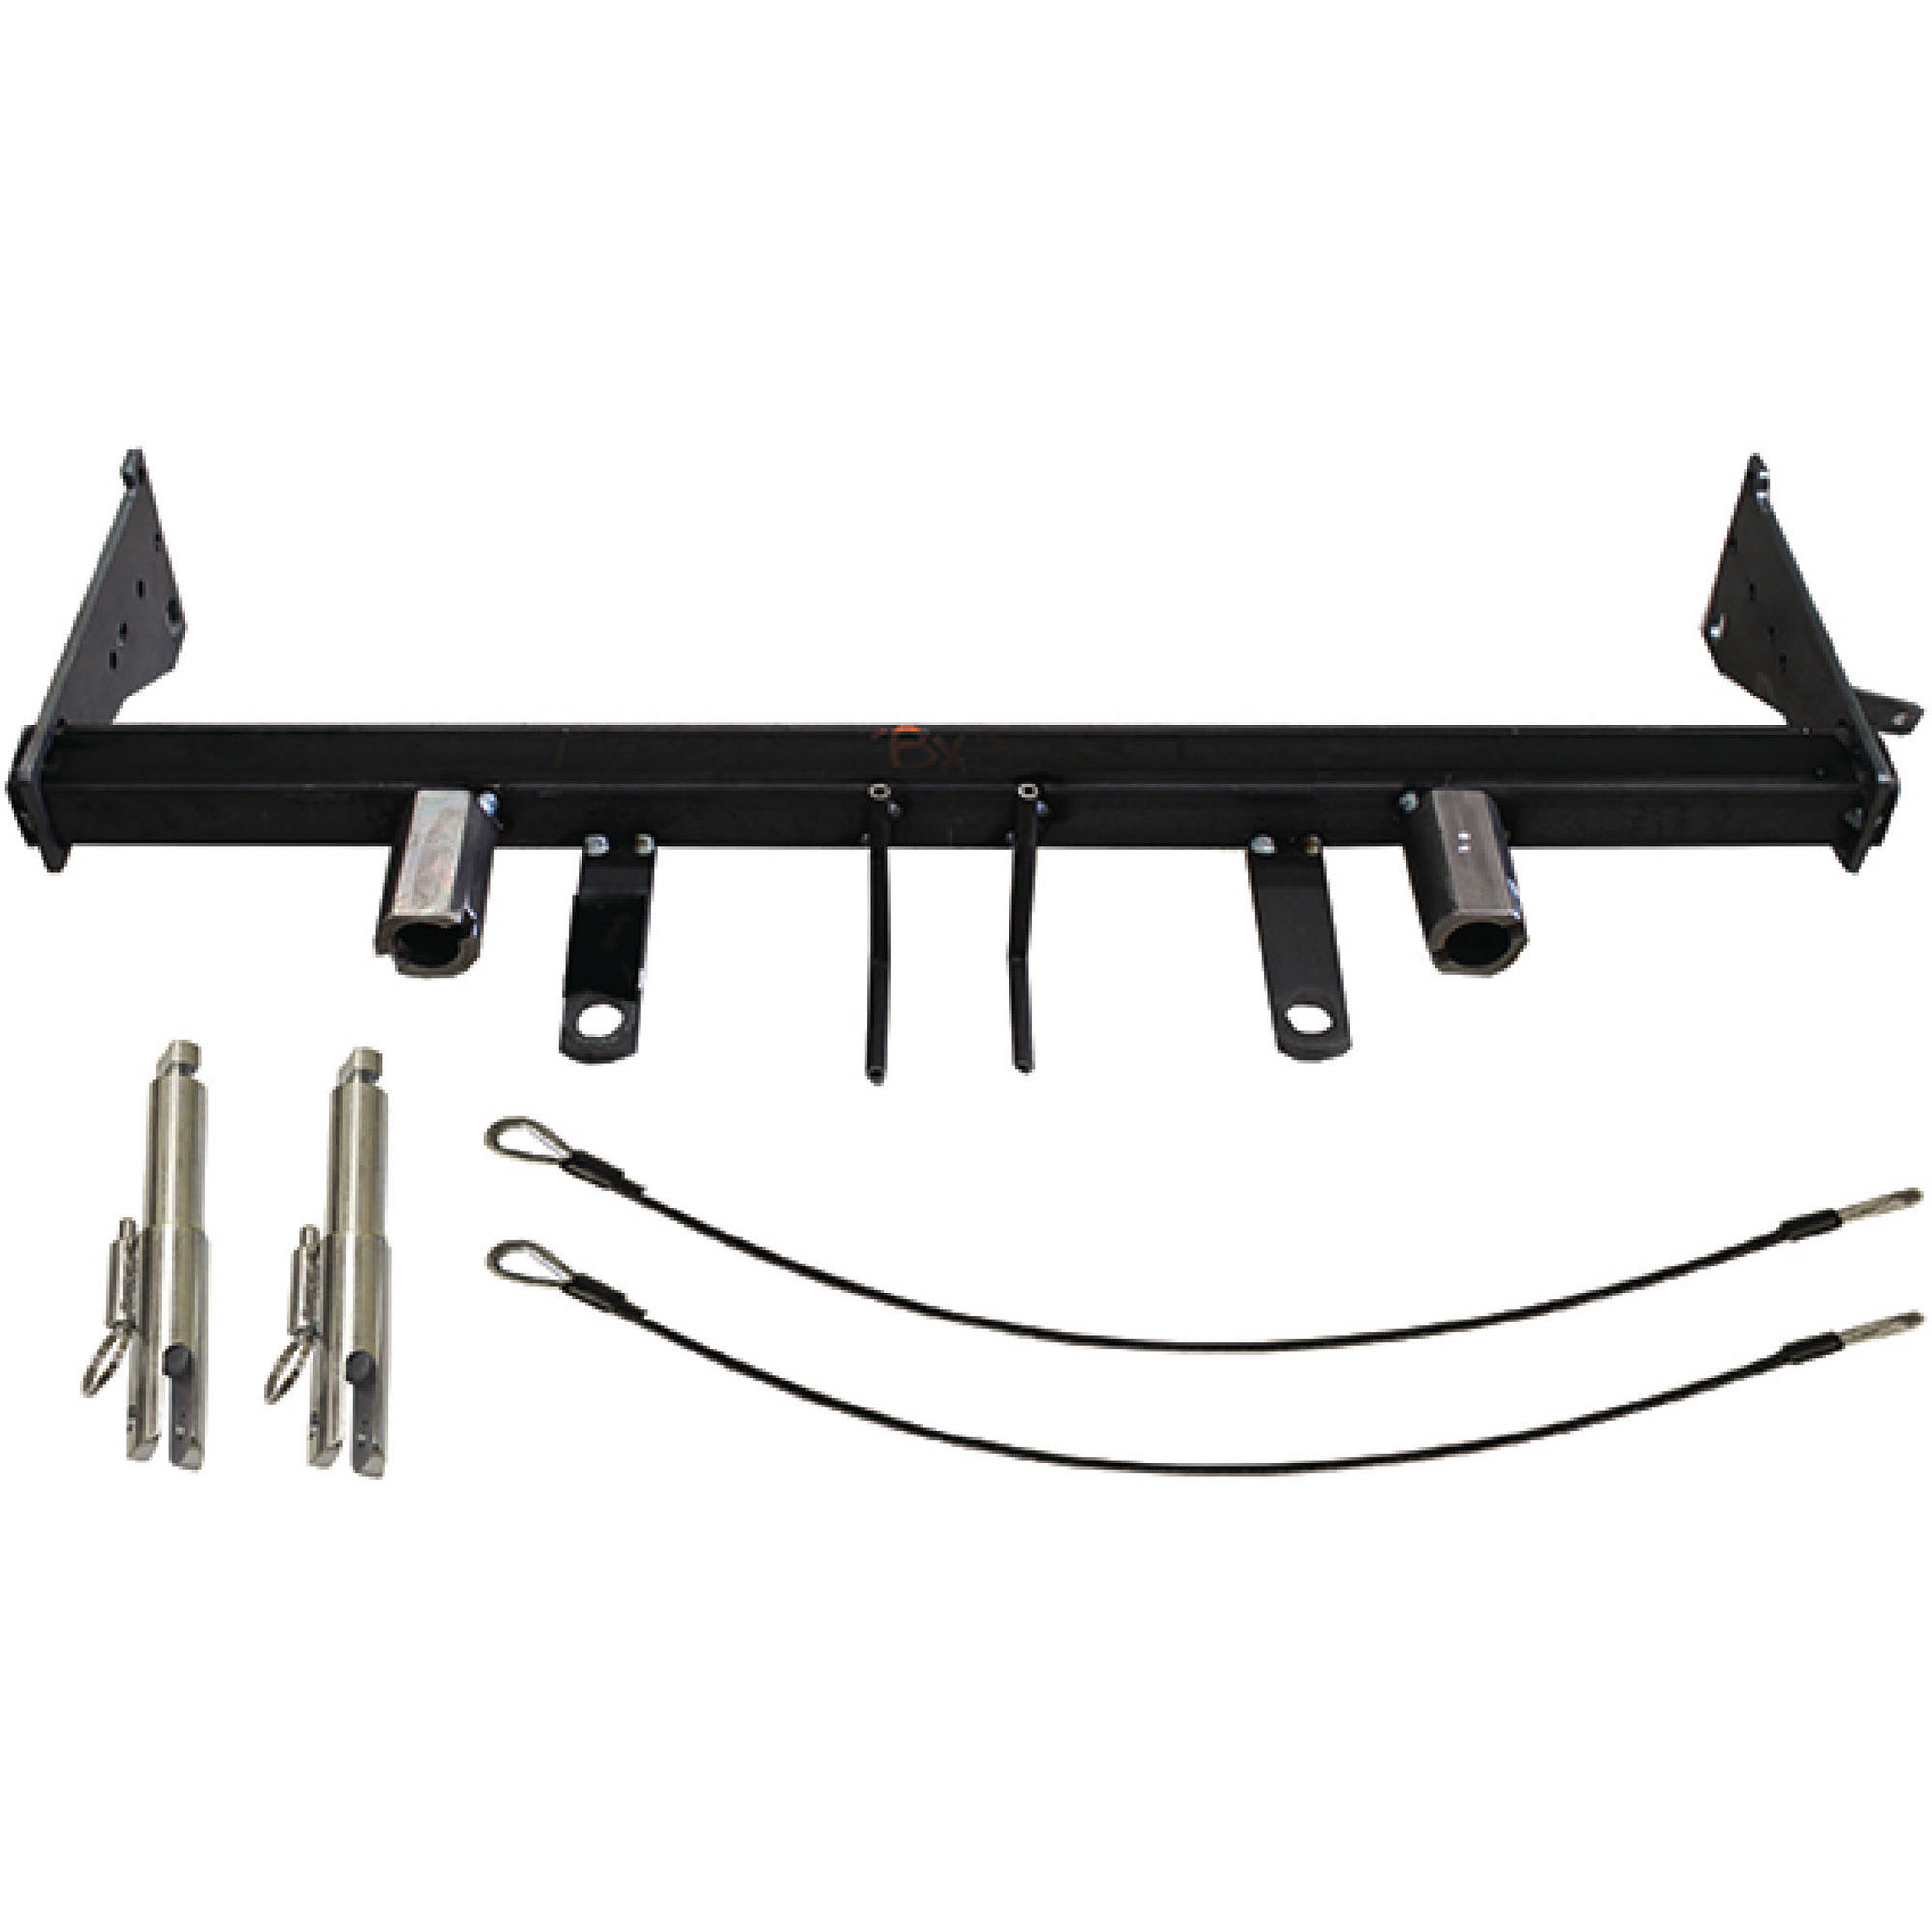 Blue Ox BX1130 Removable Tab RV Tow Baseplates for 2011-2017 Jeep Patriot by Blue Ox